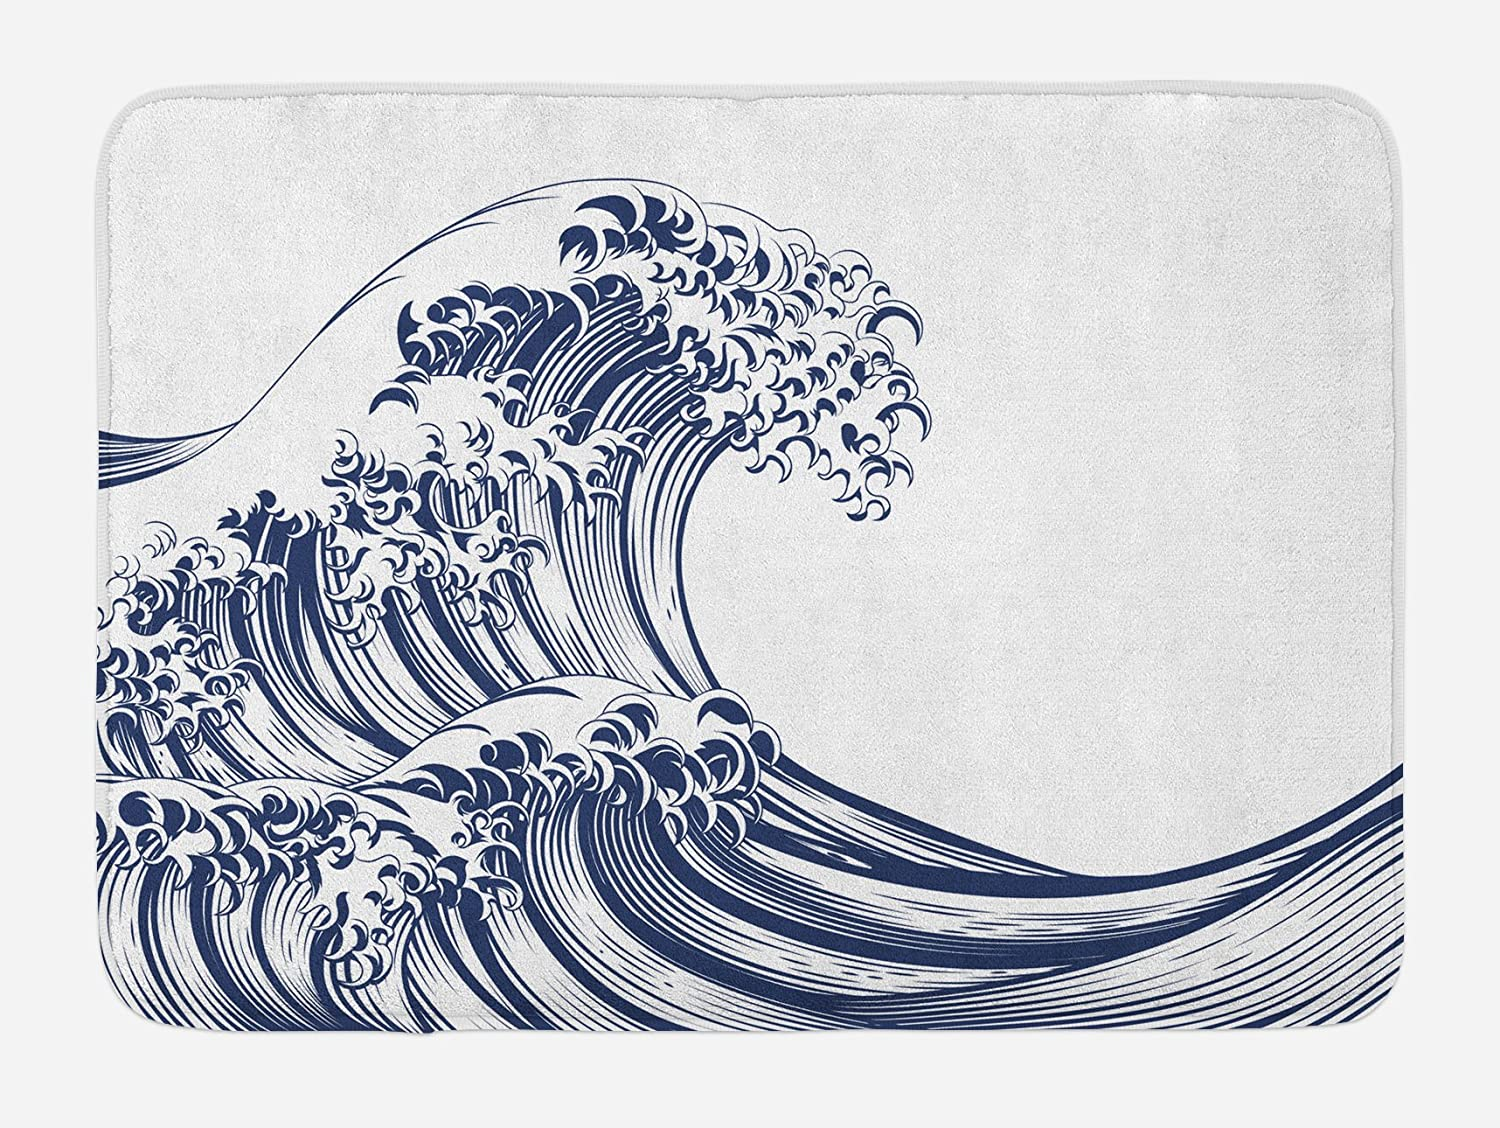 "Ambesonne Japanese Wave Bath Mat, Oriental Vintage Wave Monochrome Kanagawa Inspired Antique Art, Plush Bathroom Decor Mat with Non Slip Backing, 29.5"" X 17.5"", Navy Blue"